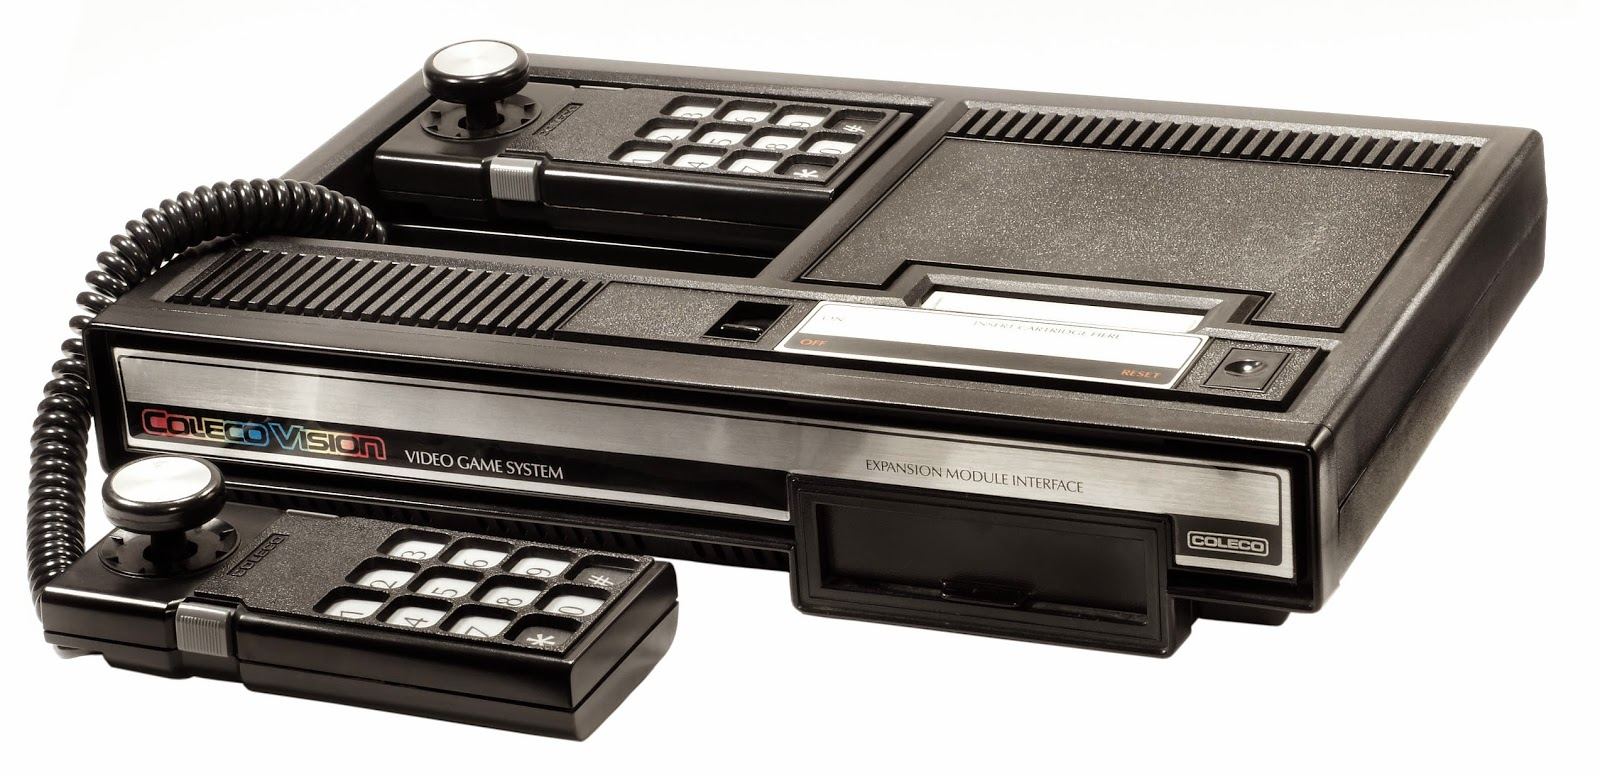 Brett Weiss: Words of Wonder: The 10 Best ColecoVision Games